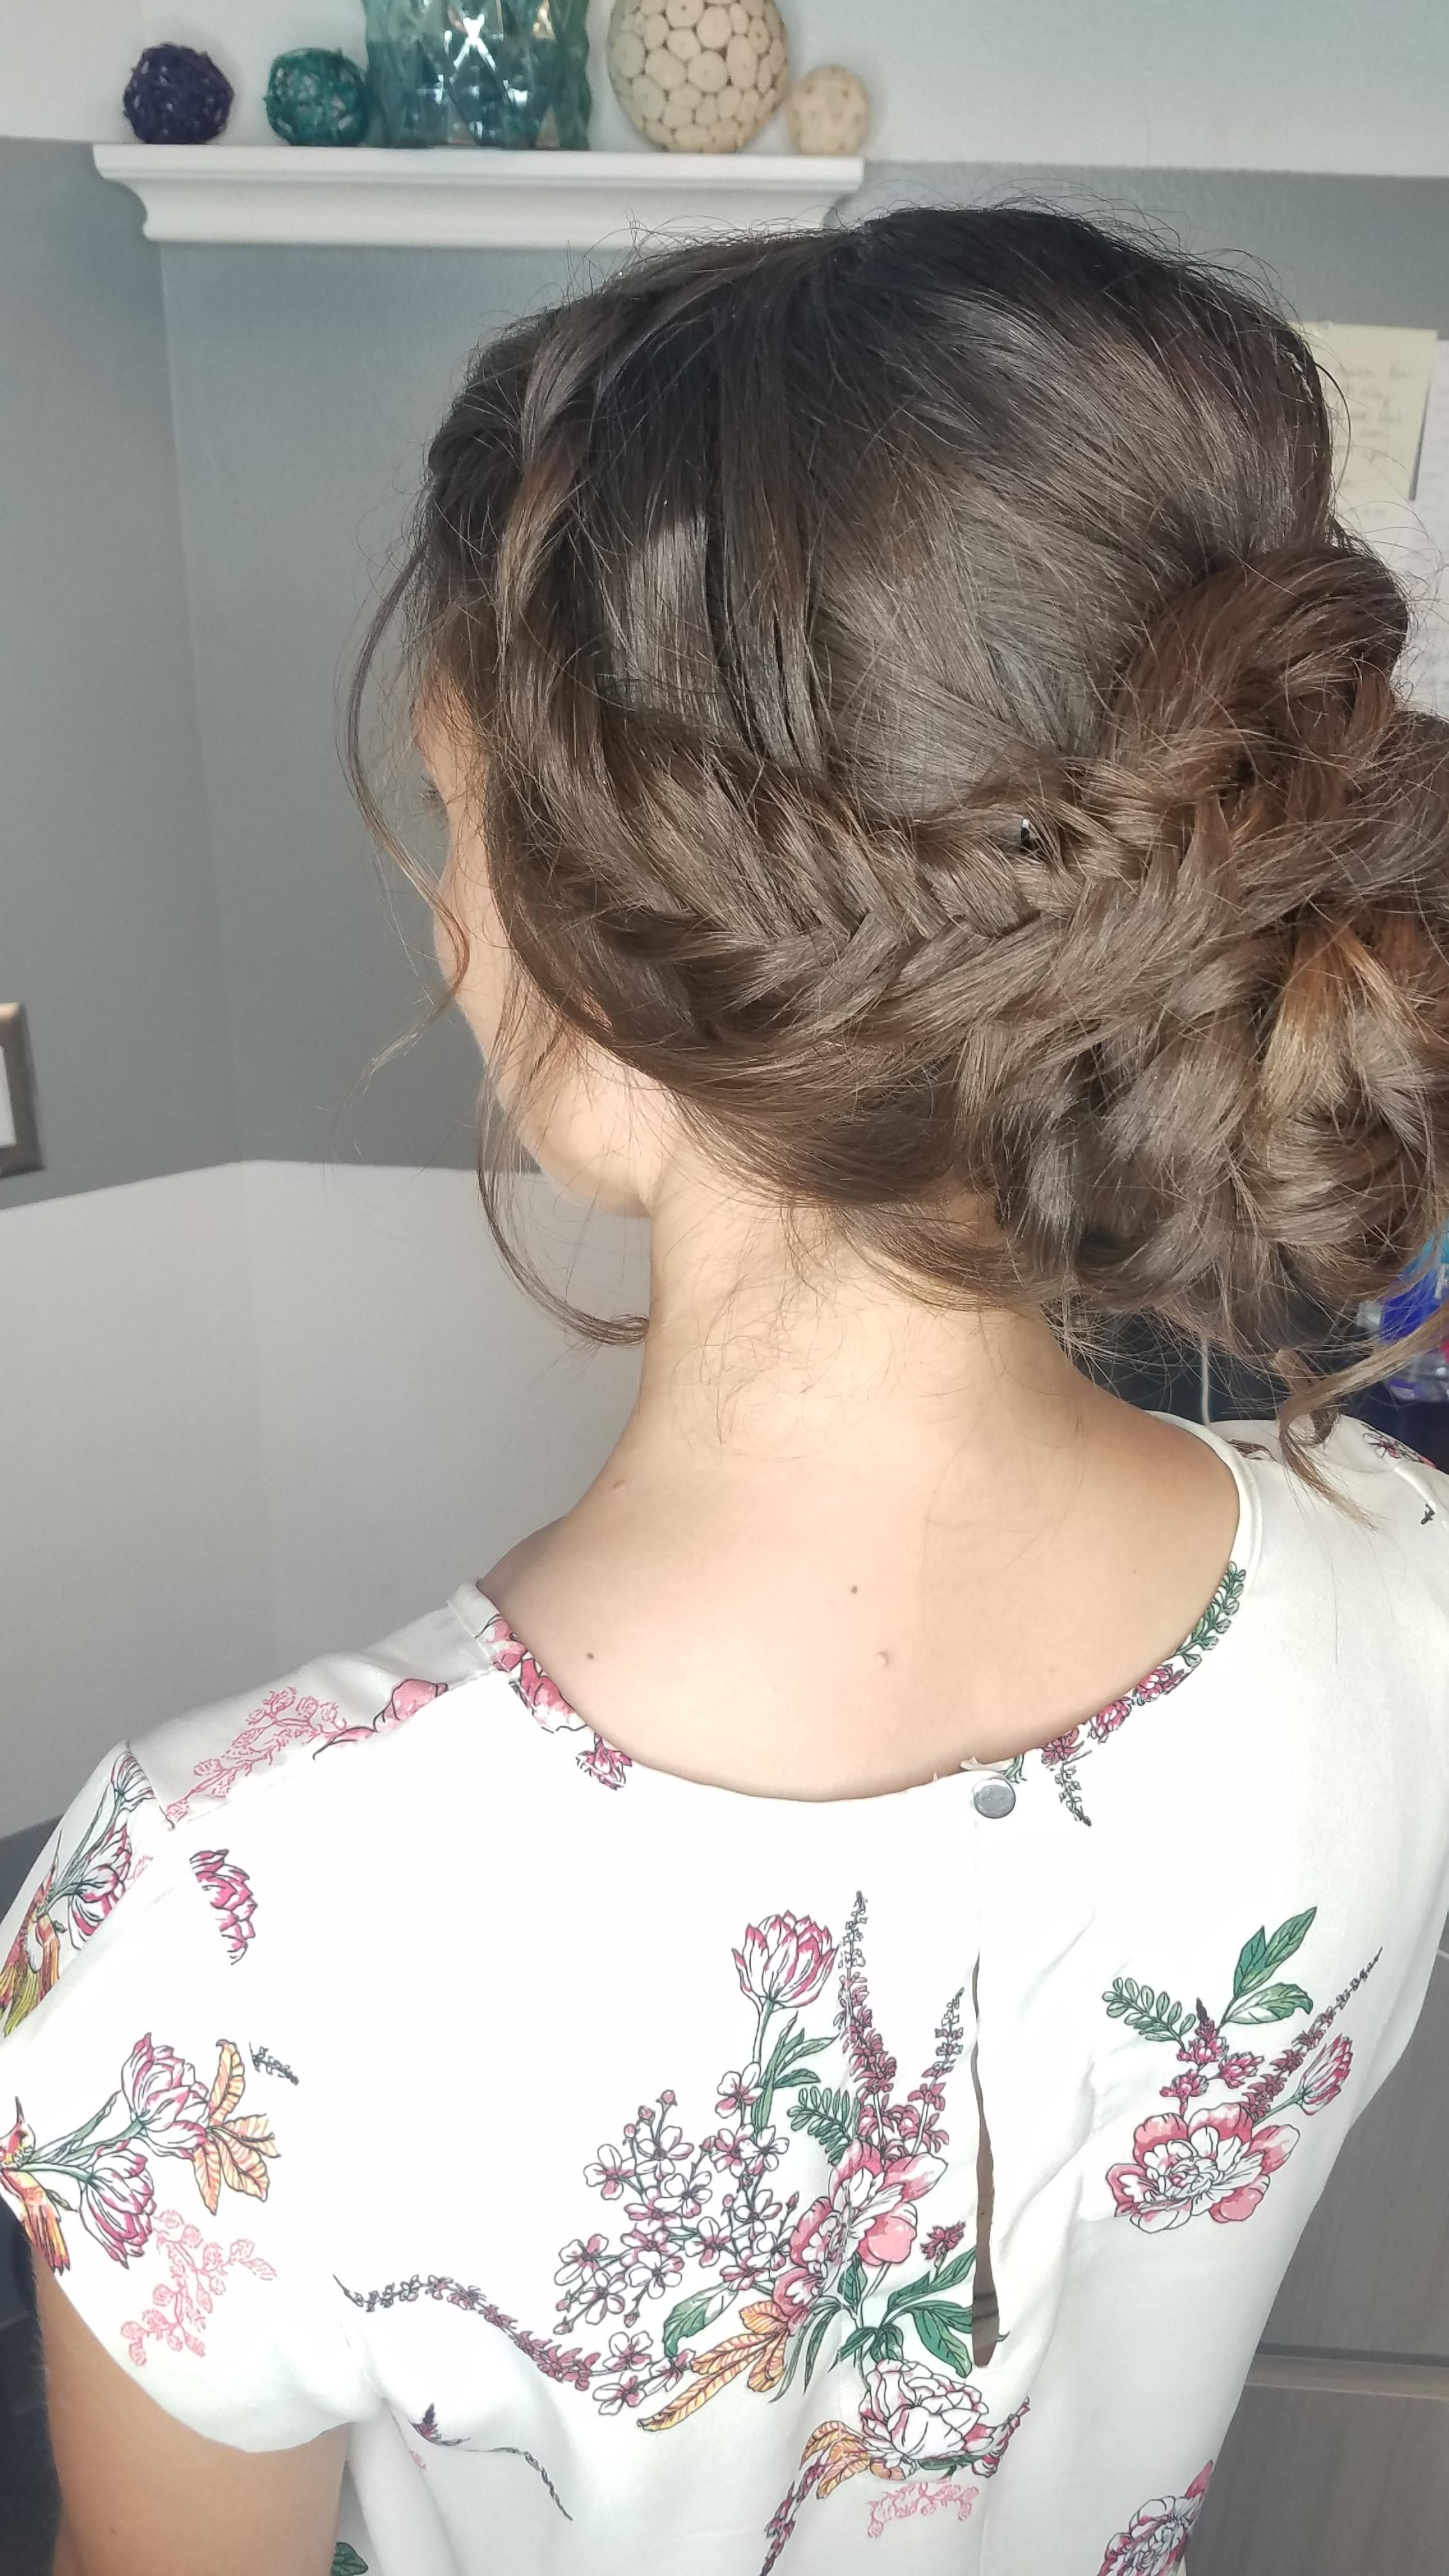 I had my hair trial months early since ium an out of town bride